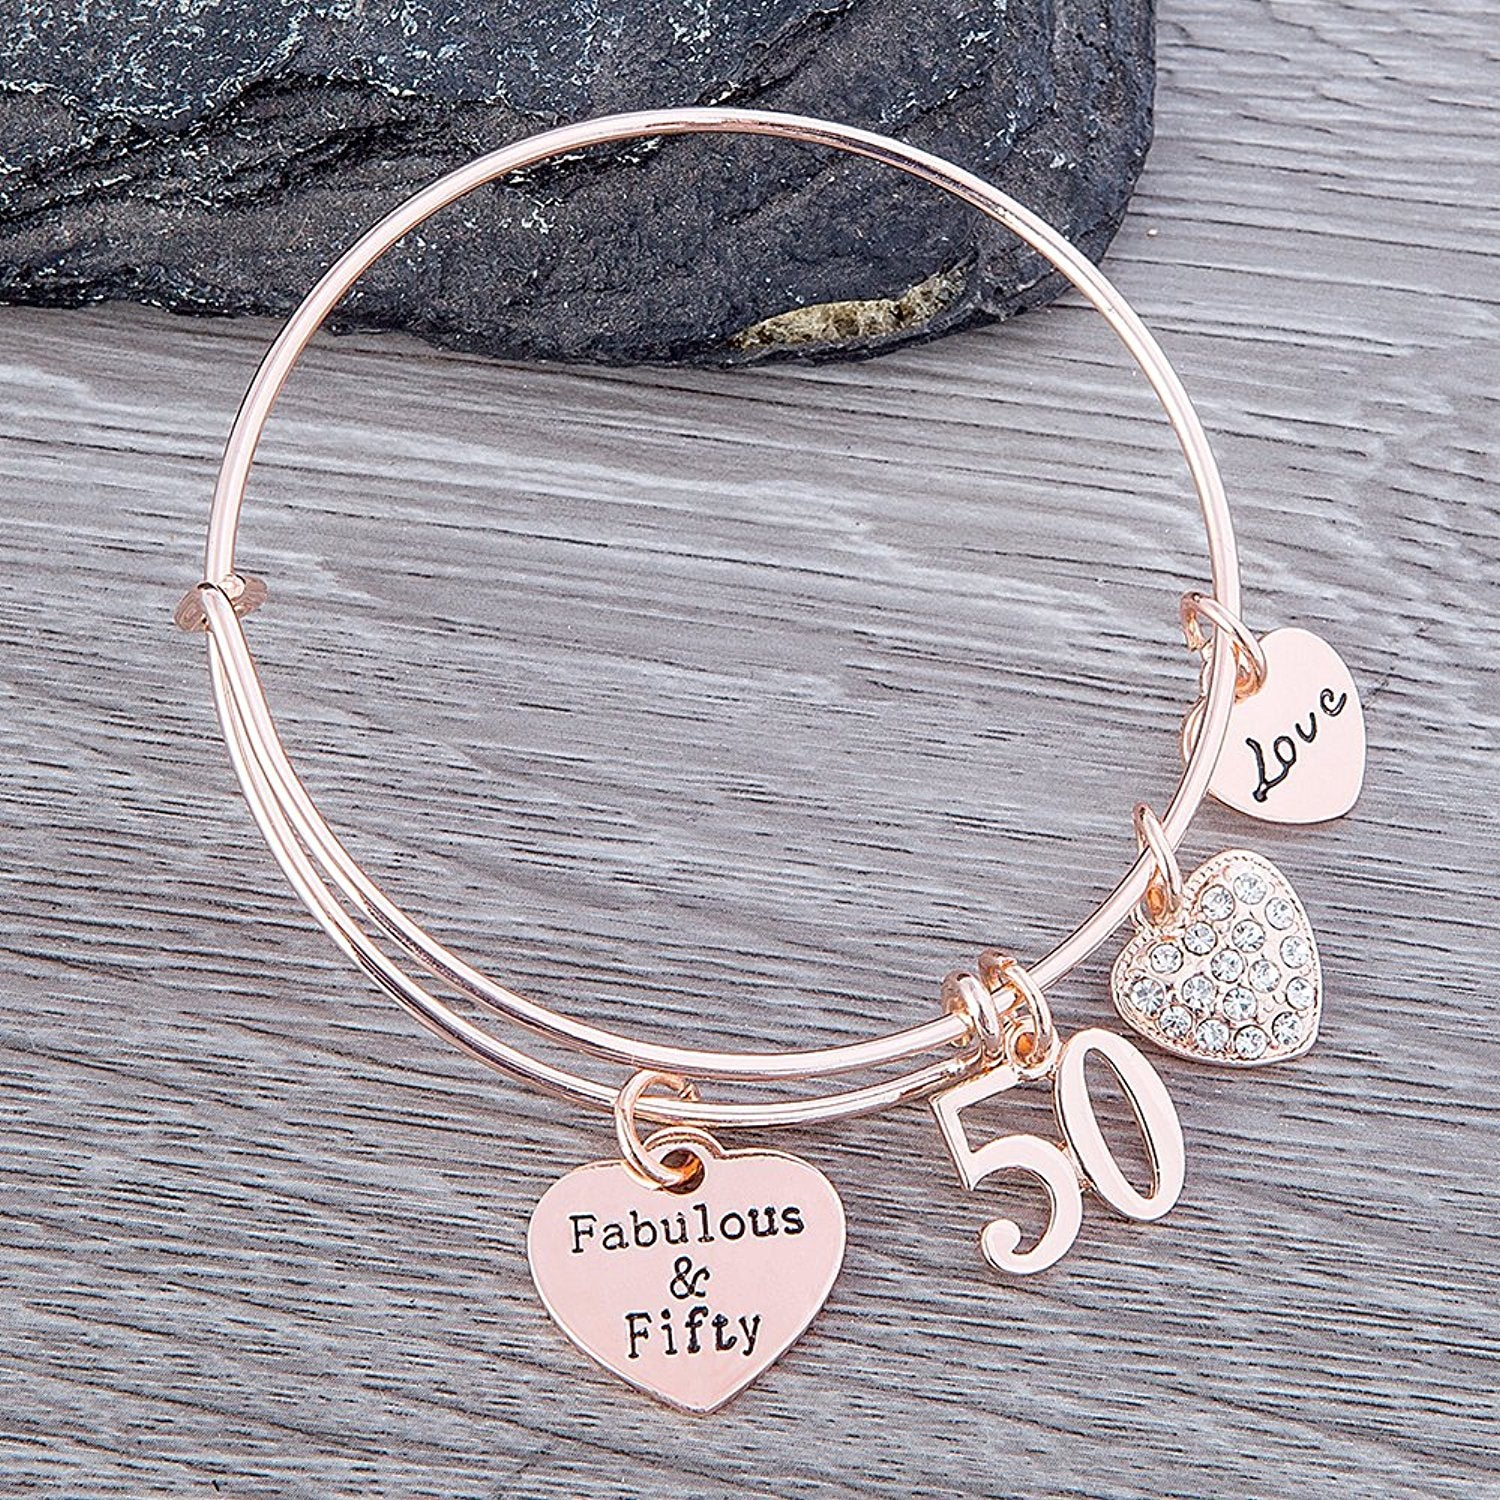 50th Birthday Gifts for Women 50th Birthday Expandable Charm Bracelet Fabulous and Fifty Bracelet & 50th Birthday Gifts for Women 50th Birthday Expandable Charm ...